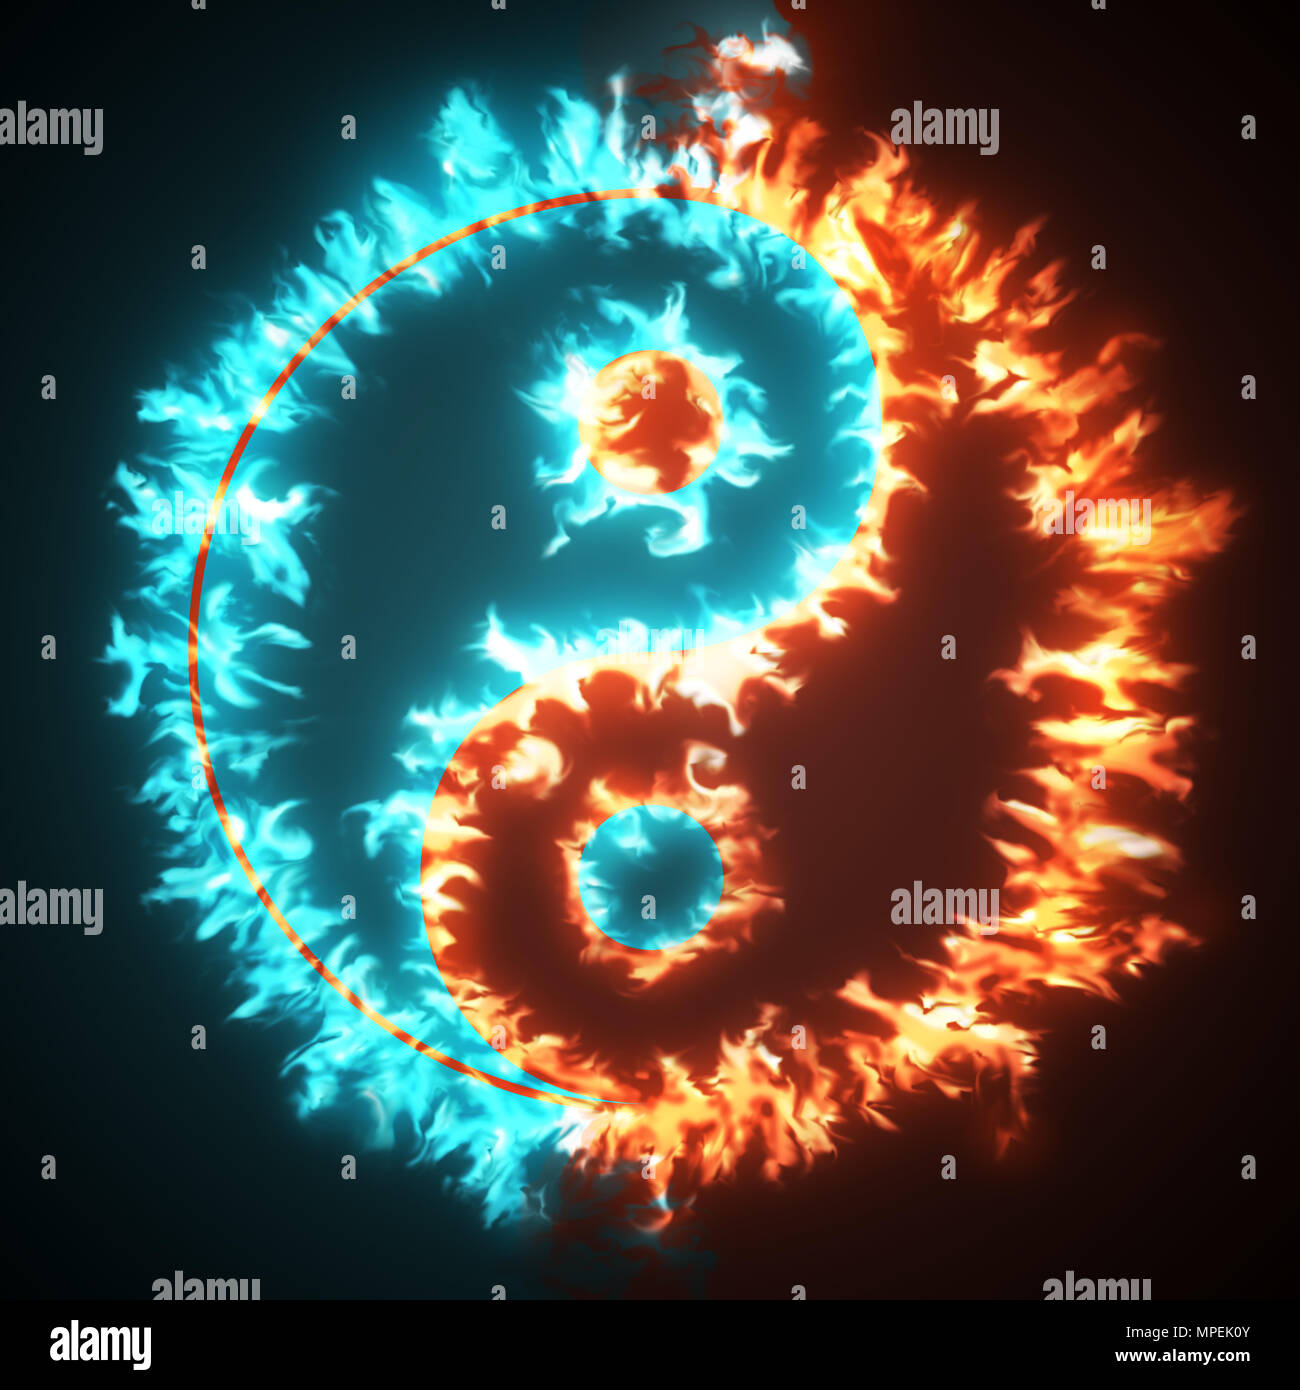 Yin And Yang Symbol On Red And Blue Fire Concepts Of The Bad